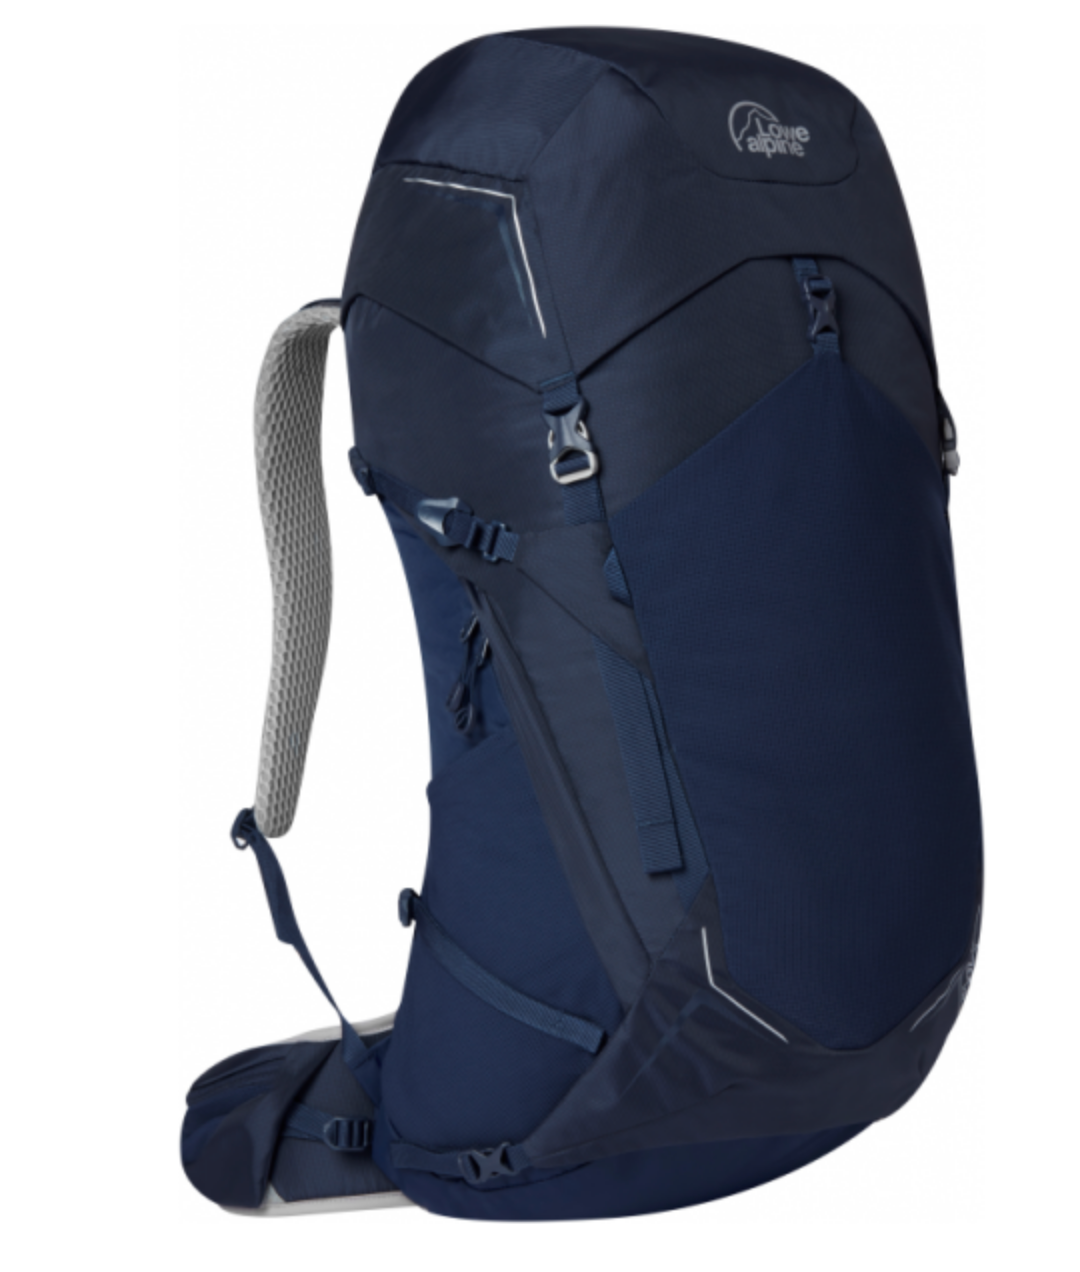 Lowe Alpine-AirZone Trek ND 43-50 (Design for Women)-Backpacking Pack-Navy-Gearaholic.com.sg